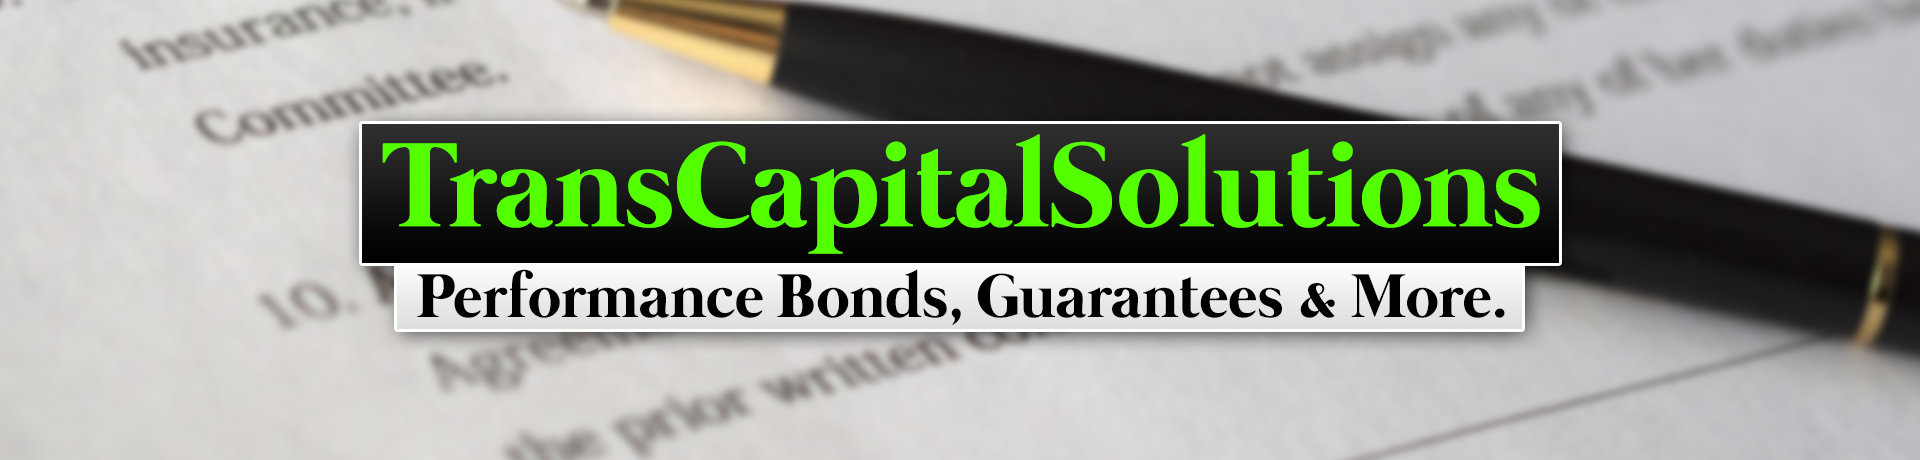 TransCapitalSolutions Performance Bonds